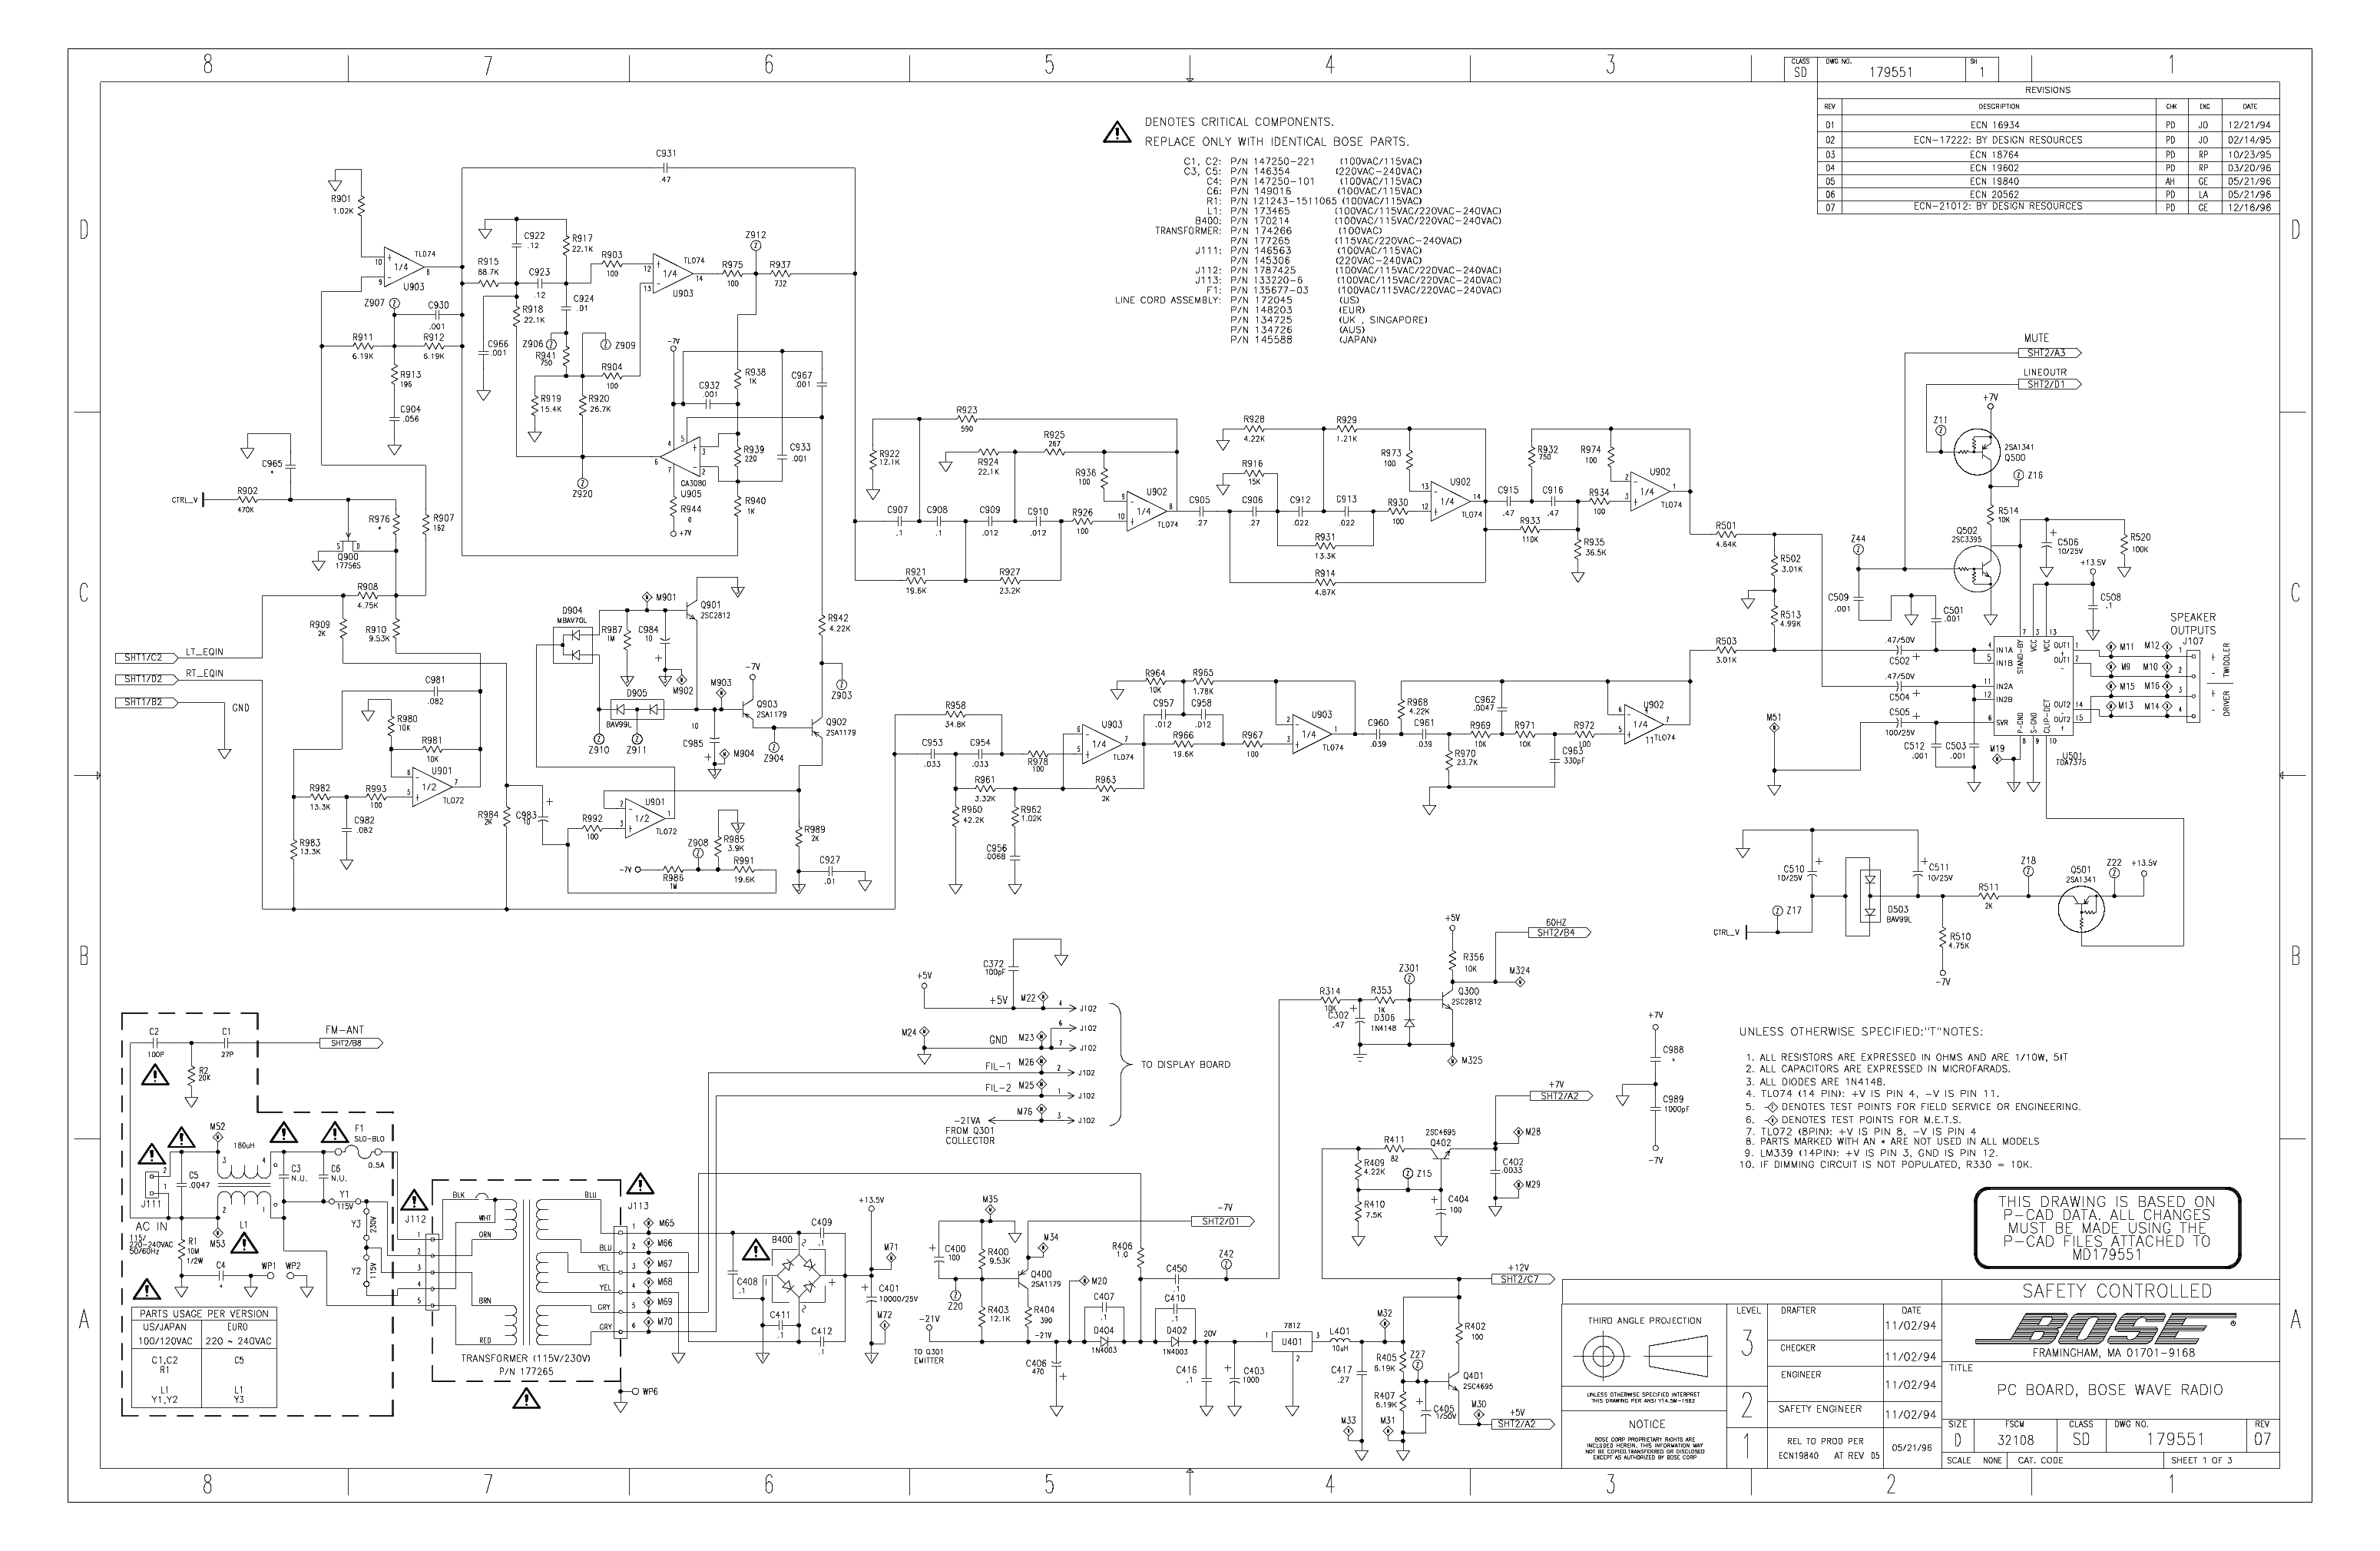 Bose 301 Wiring Diagram Not Lossing Lifestyle Benq Electronic Circuit Diagrams Amplifier Sigtronics Spa 400